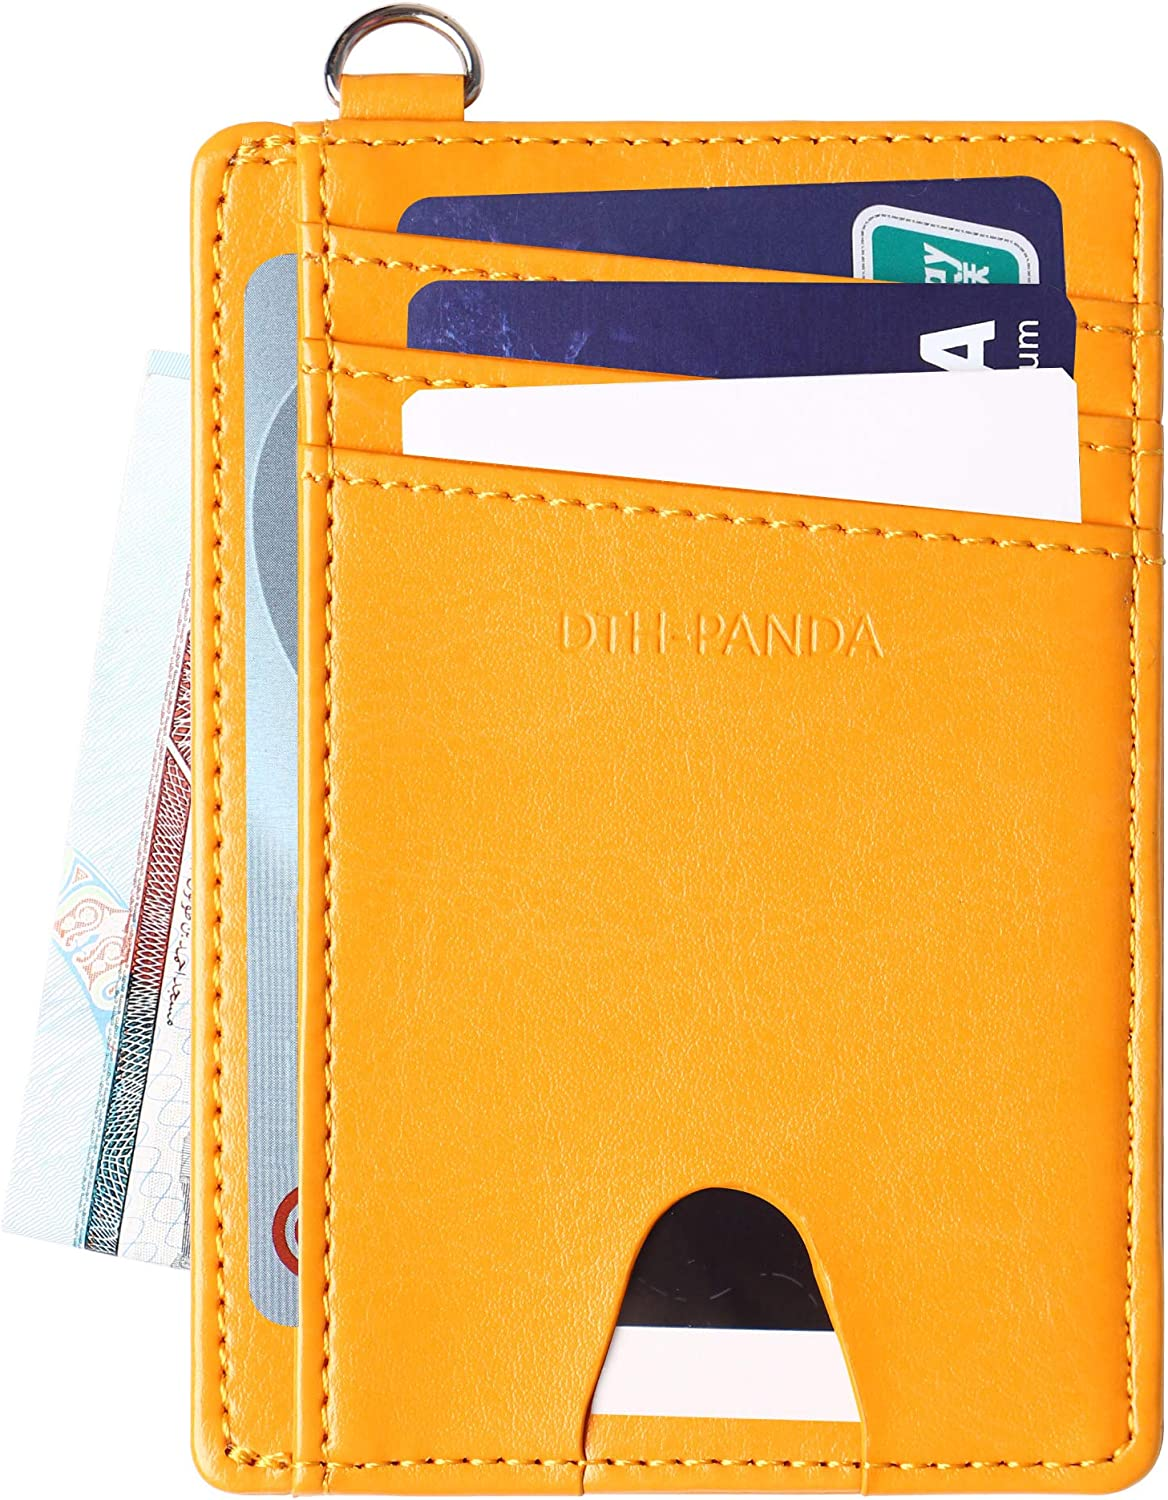 Credit Card Holder - New products world's highest Inventory cleanup selling sale quality popular Slim RFID Case Leather Wallet Minima